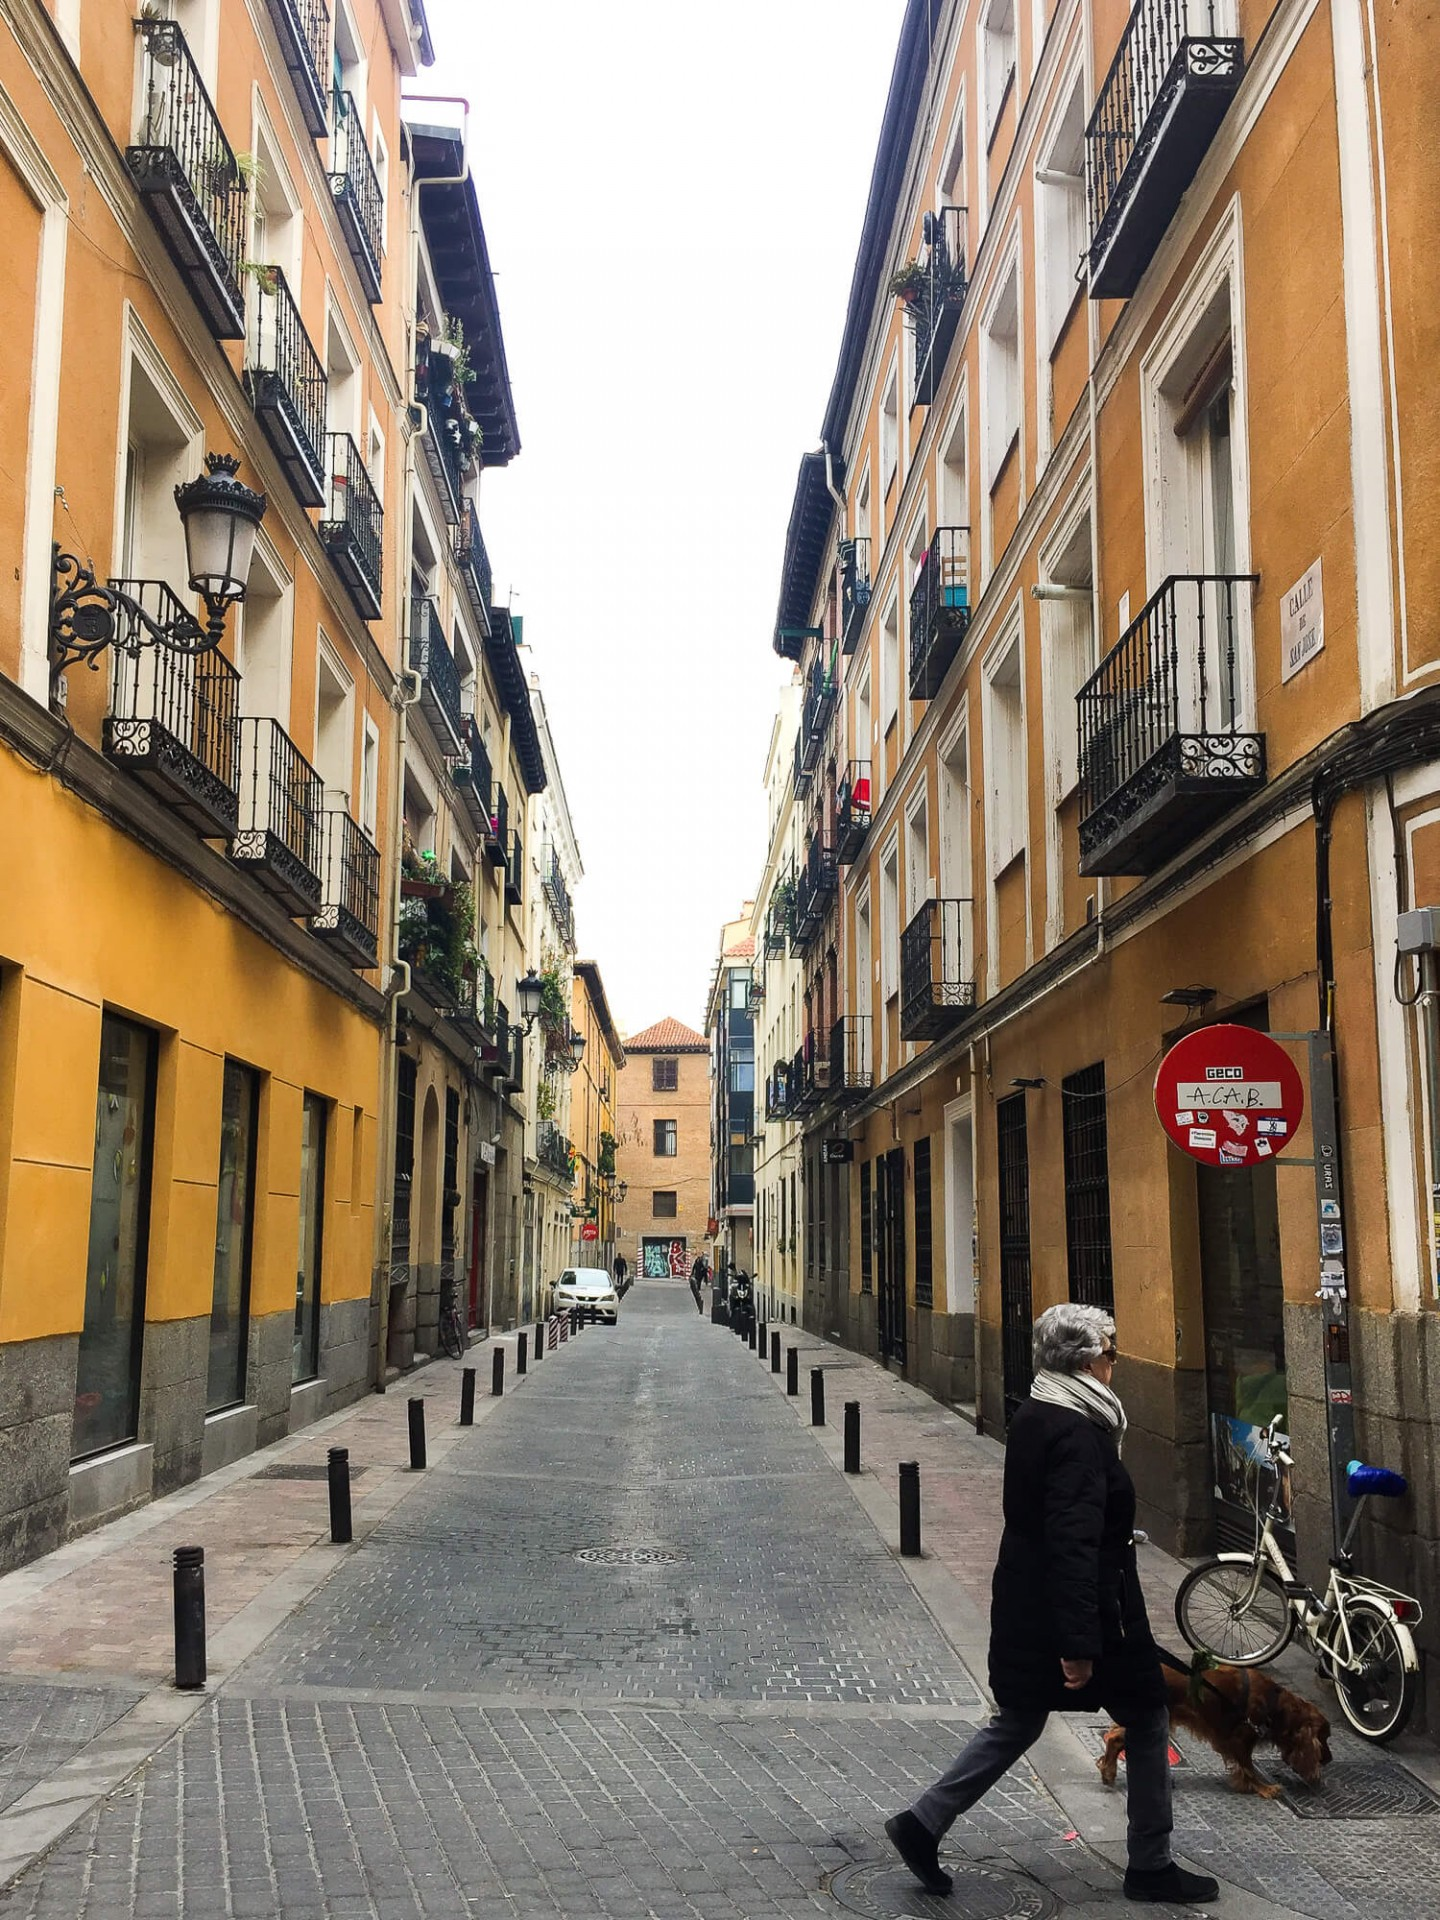 A three day guide to visiting Madrid with tips from a local. Including where to stay, what to do and where to eat! Great for when you're planning your visit to Madrid.